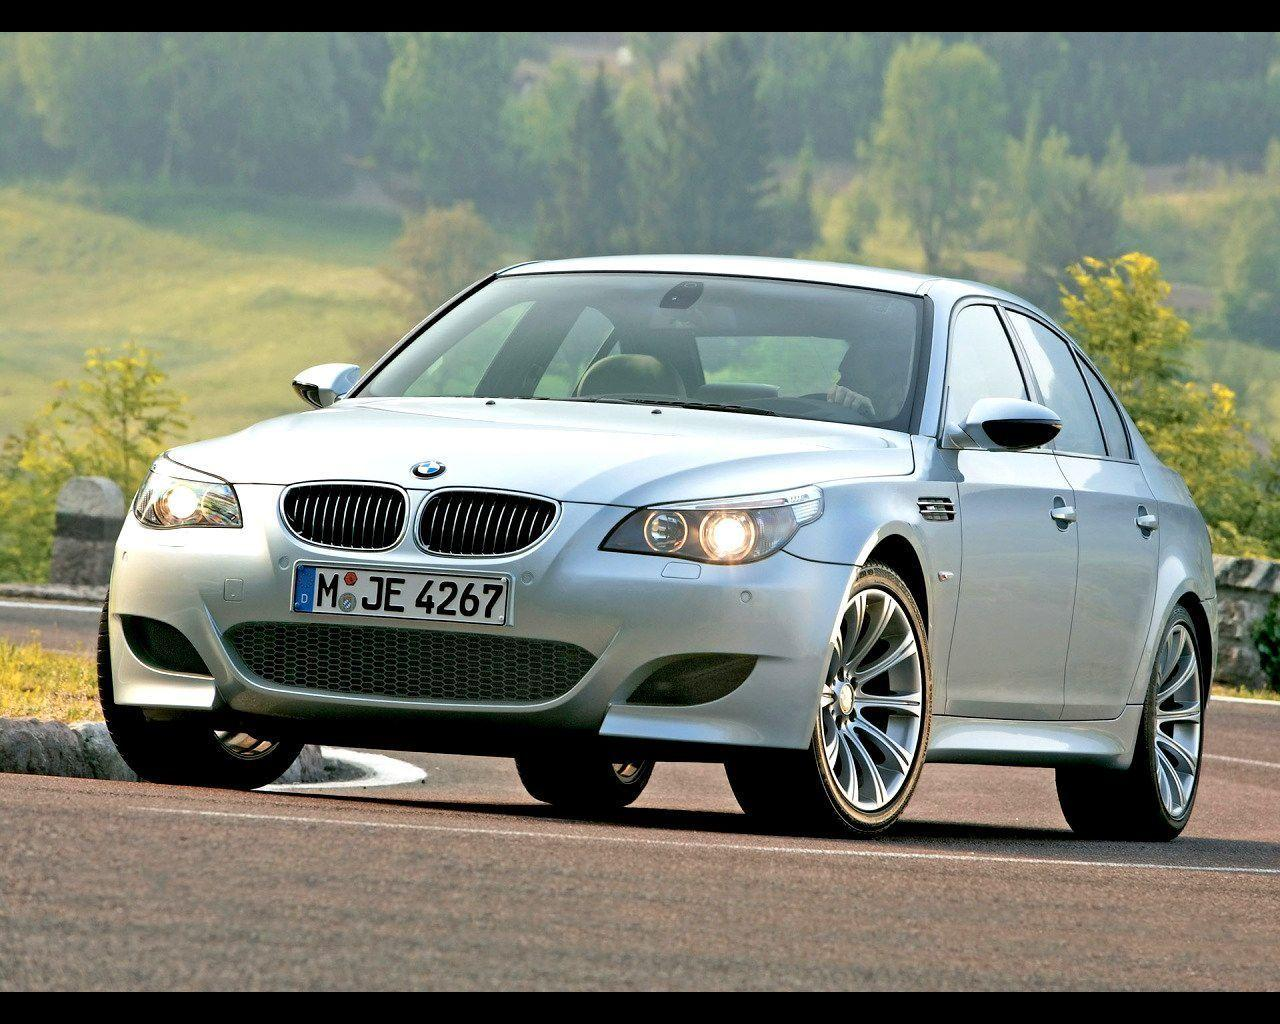 2005 BMW M5 Wallpaper 01 - 1280x1024